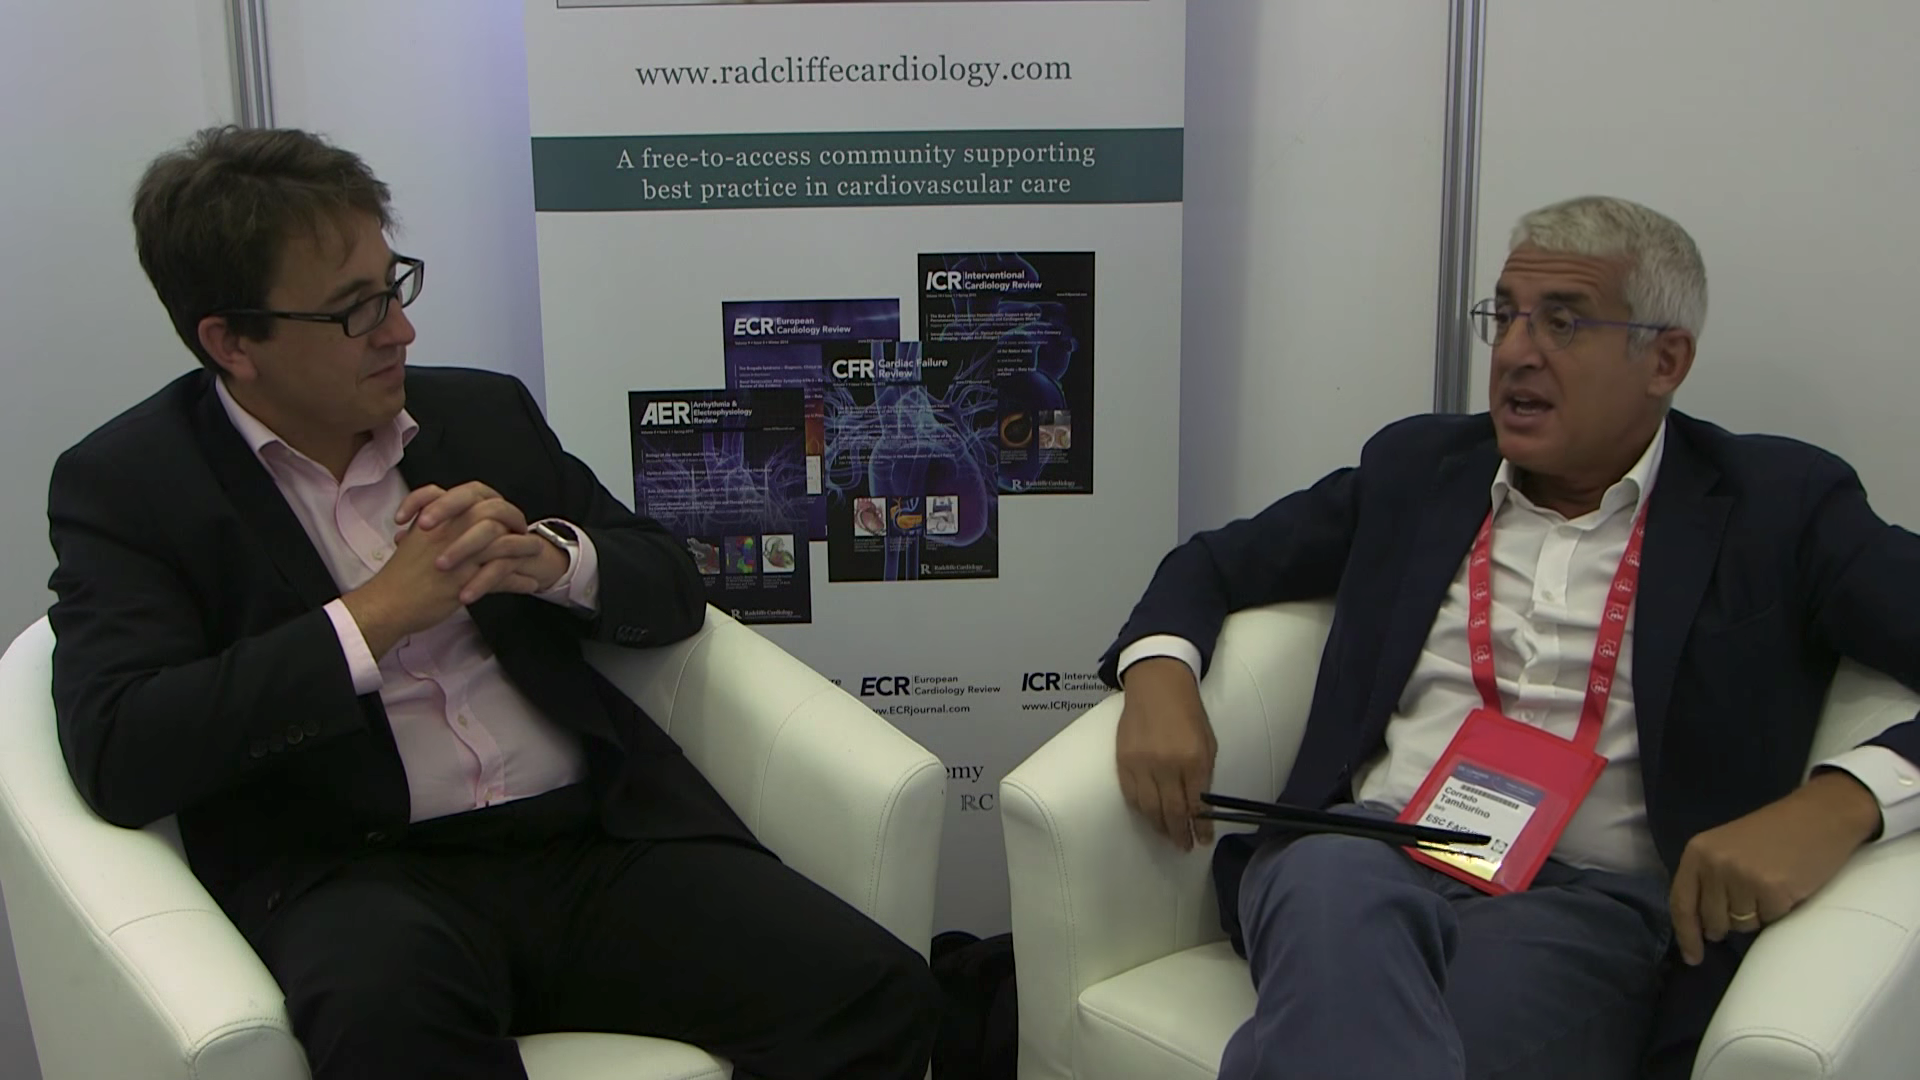 ESC 2015: IVUS Clinical discuss with Case Justin Davies and Corrado Tamburino